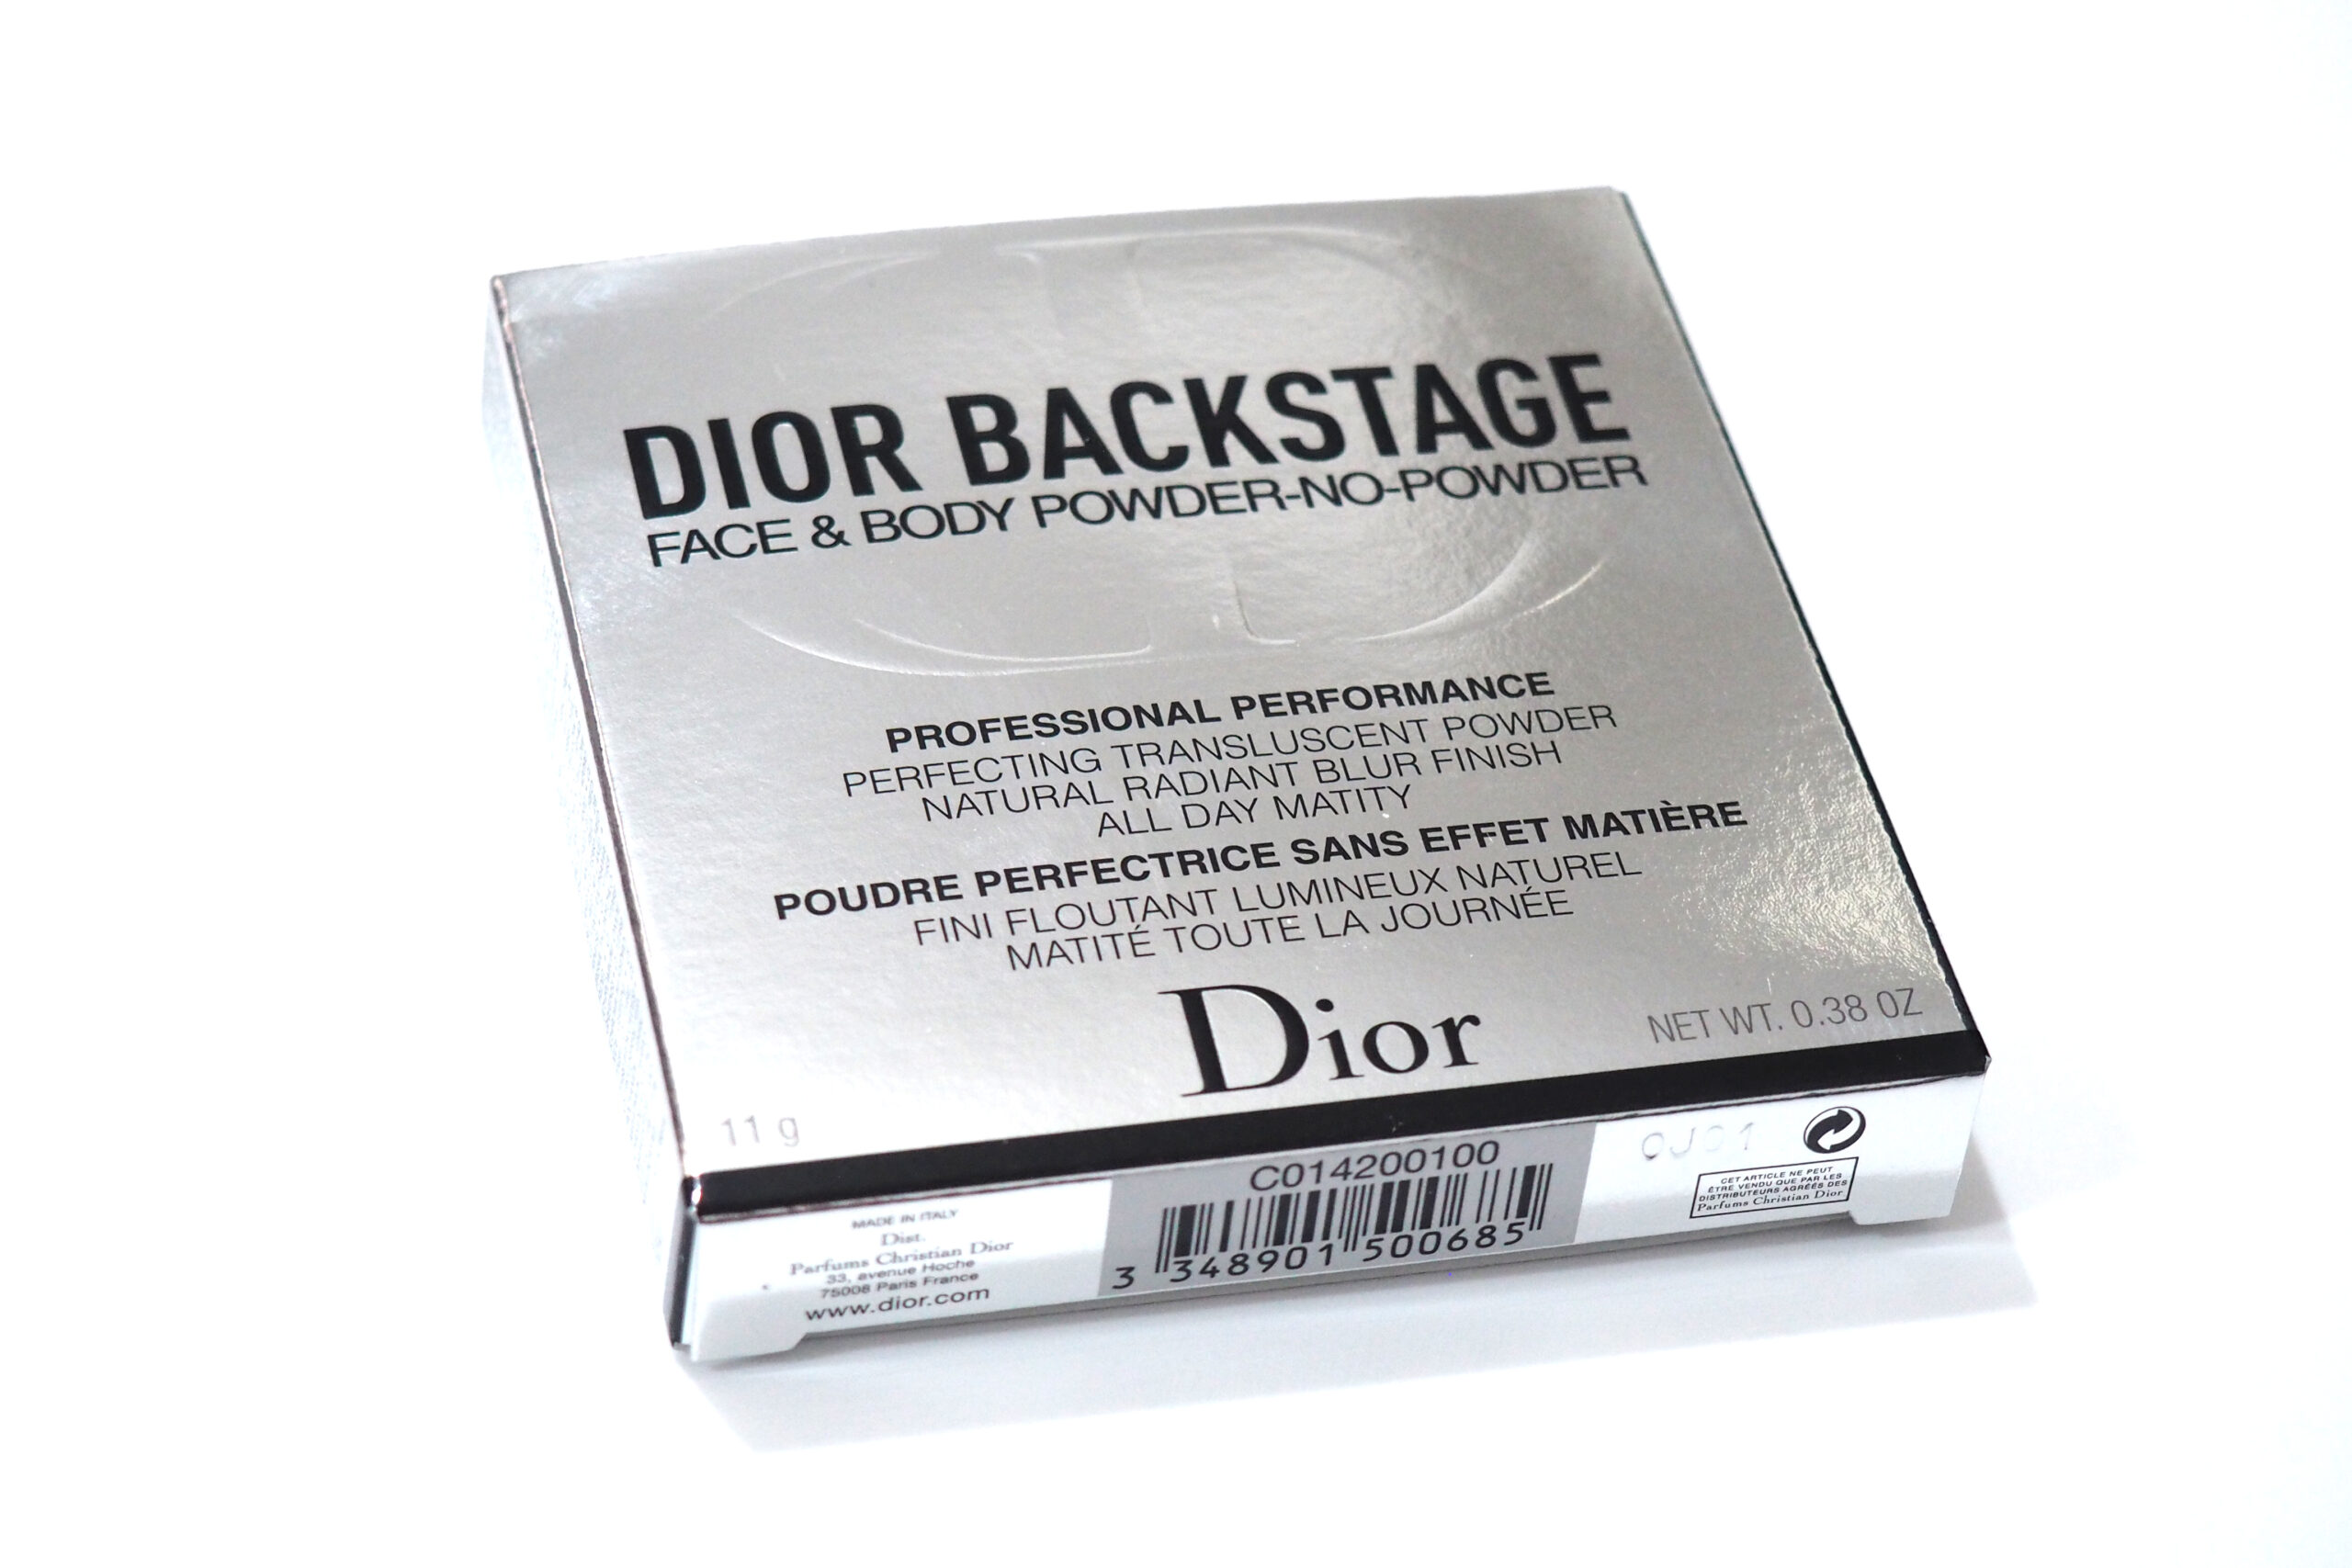 DIOR Backstage Face & Body Powder No Powder Review / Swatches 1